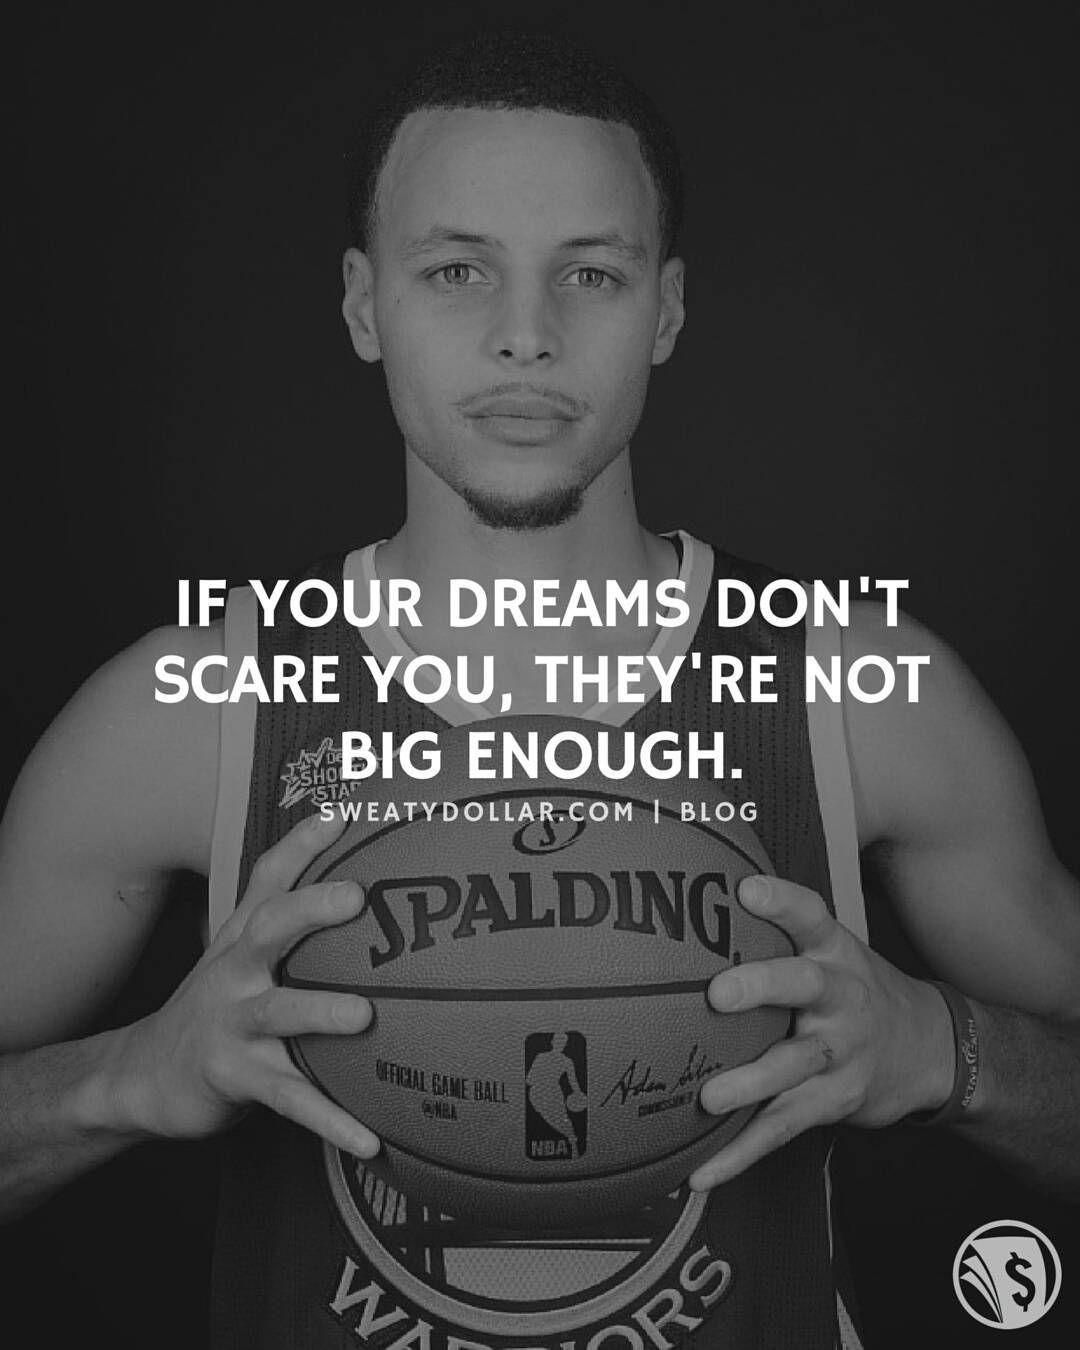 If You Re Dreams Don T Scare You They Re Not Big Enough Stephen Curry Sports Quotes Basketball Basketball Quotes Basketball Quotes Inspirational